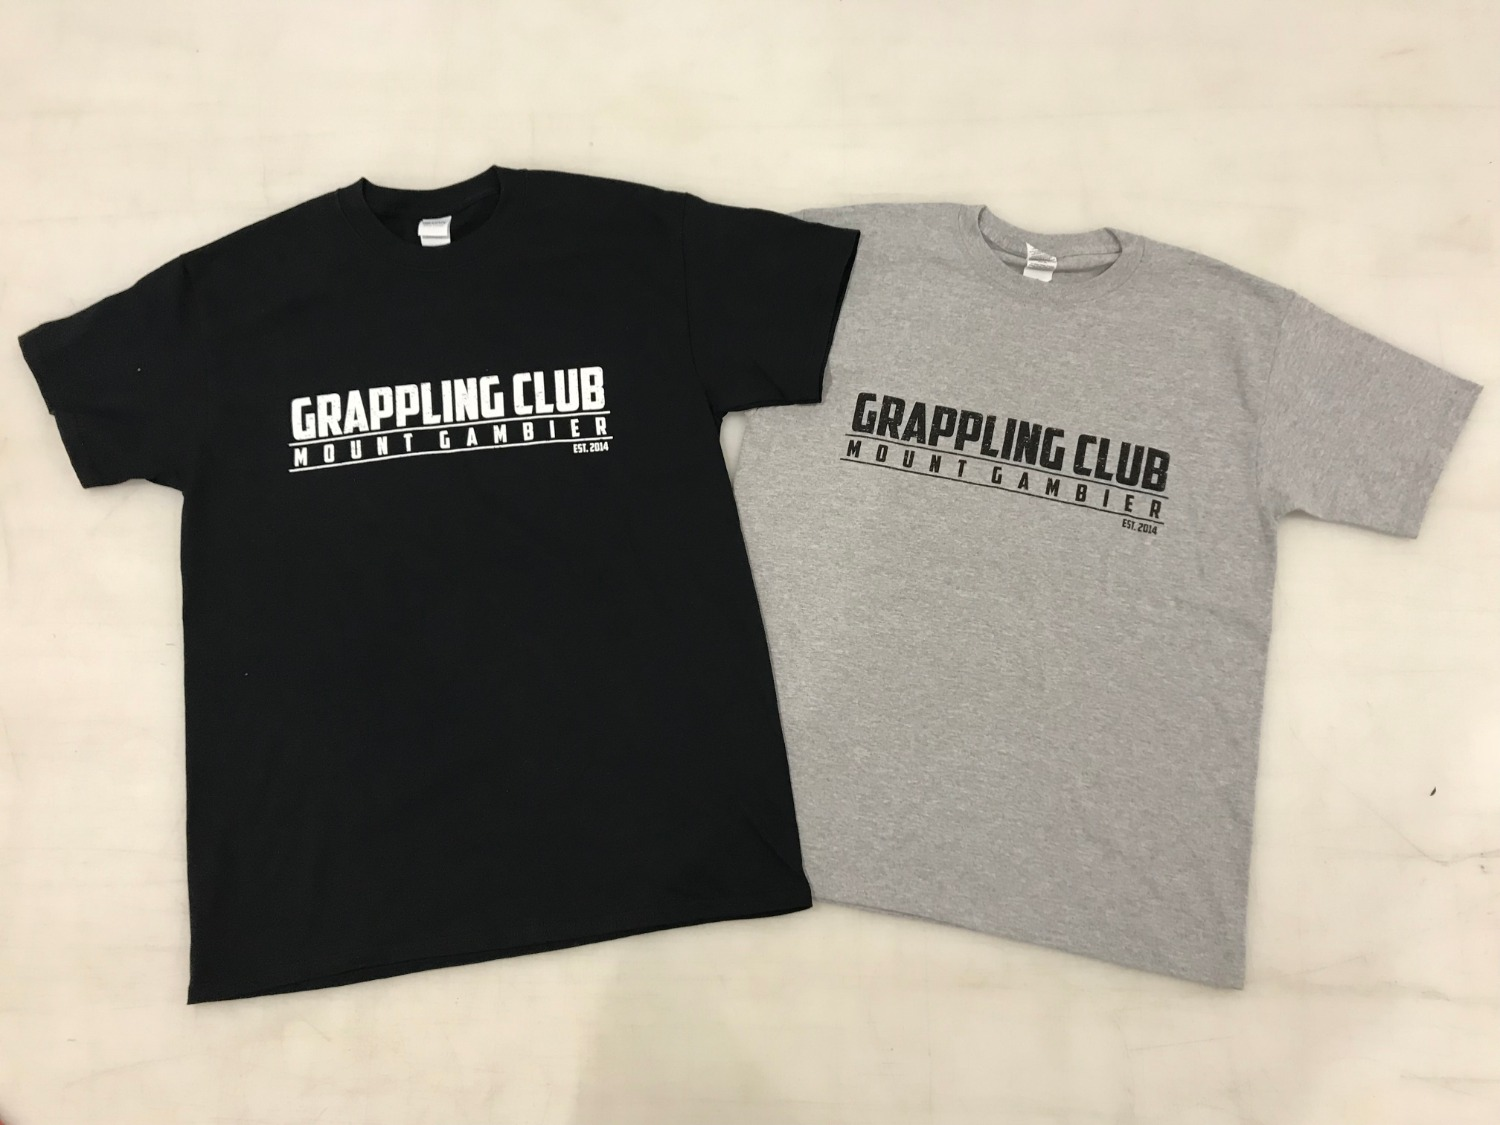 Mount Gambier Grappeling Club Tee's_edited